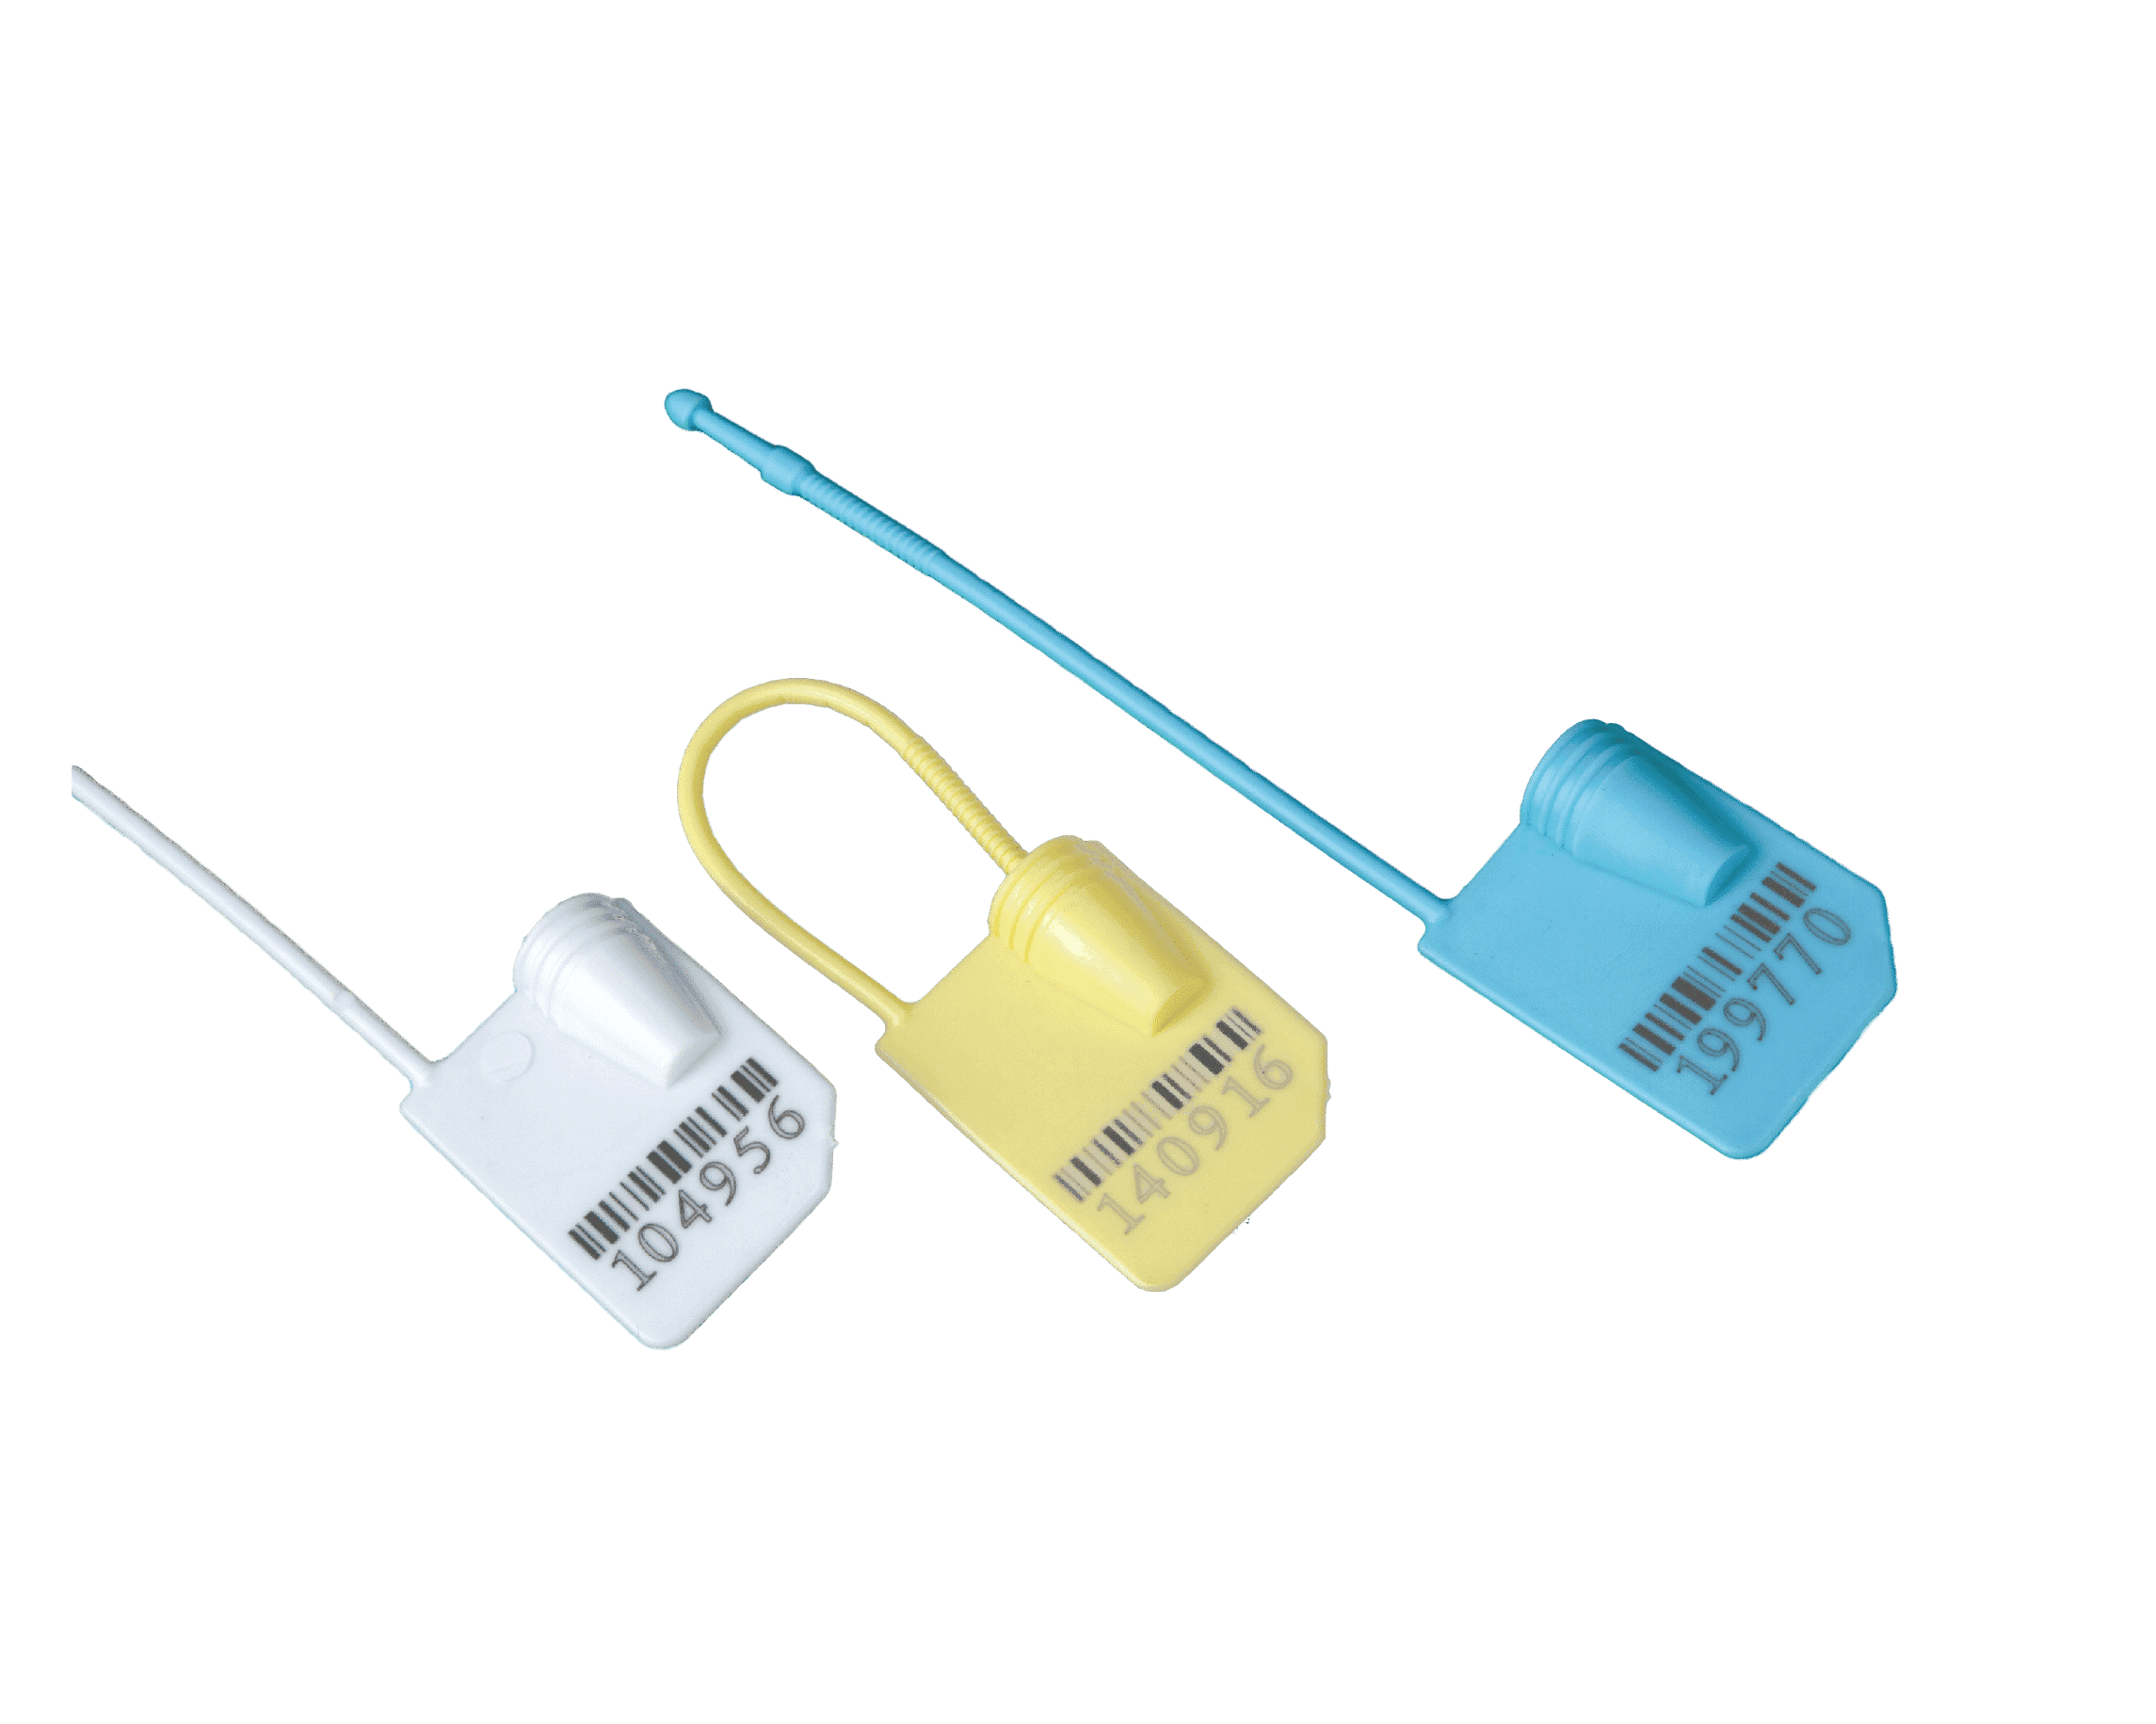 how to break a padlock with bolt cutters